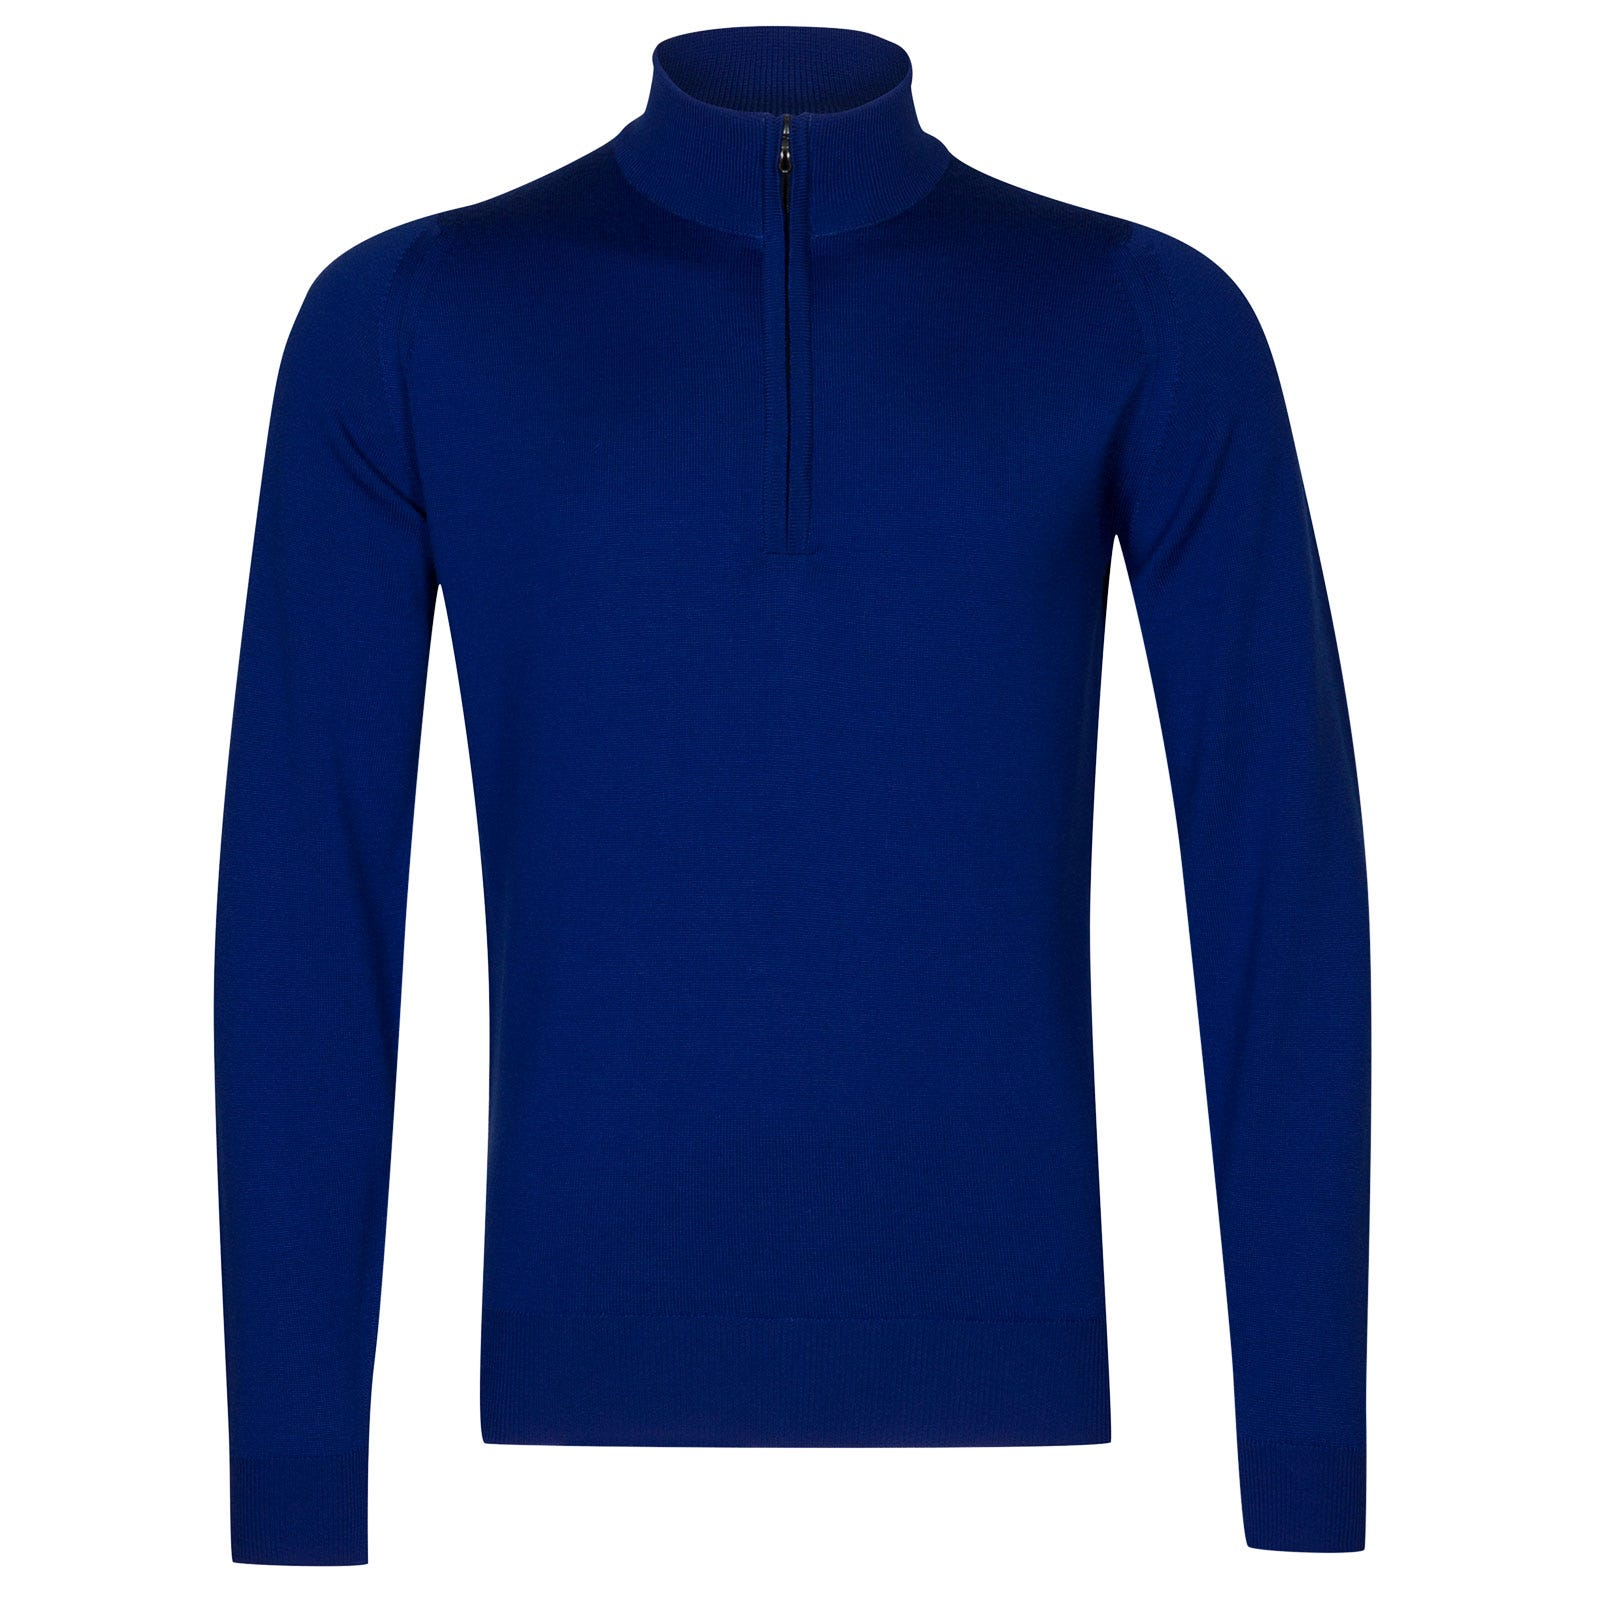 John Smedley tapton Merino Wool Pullover in Coniston Blue-L